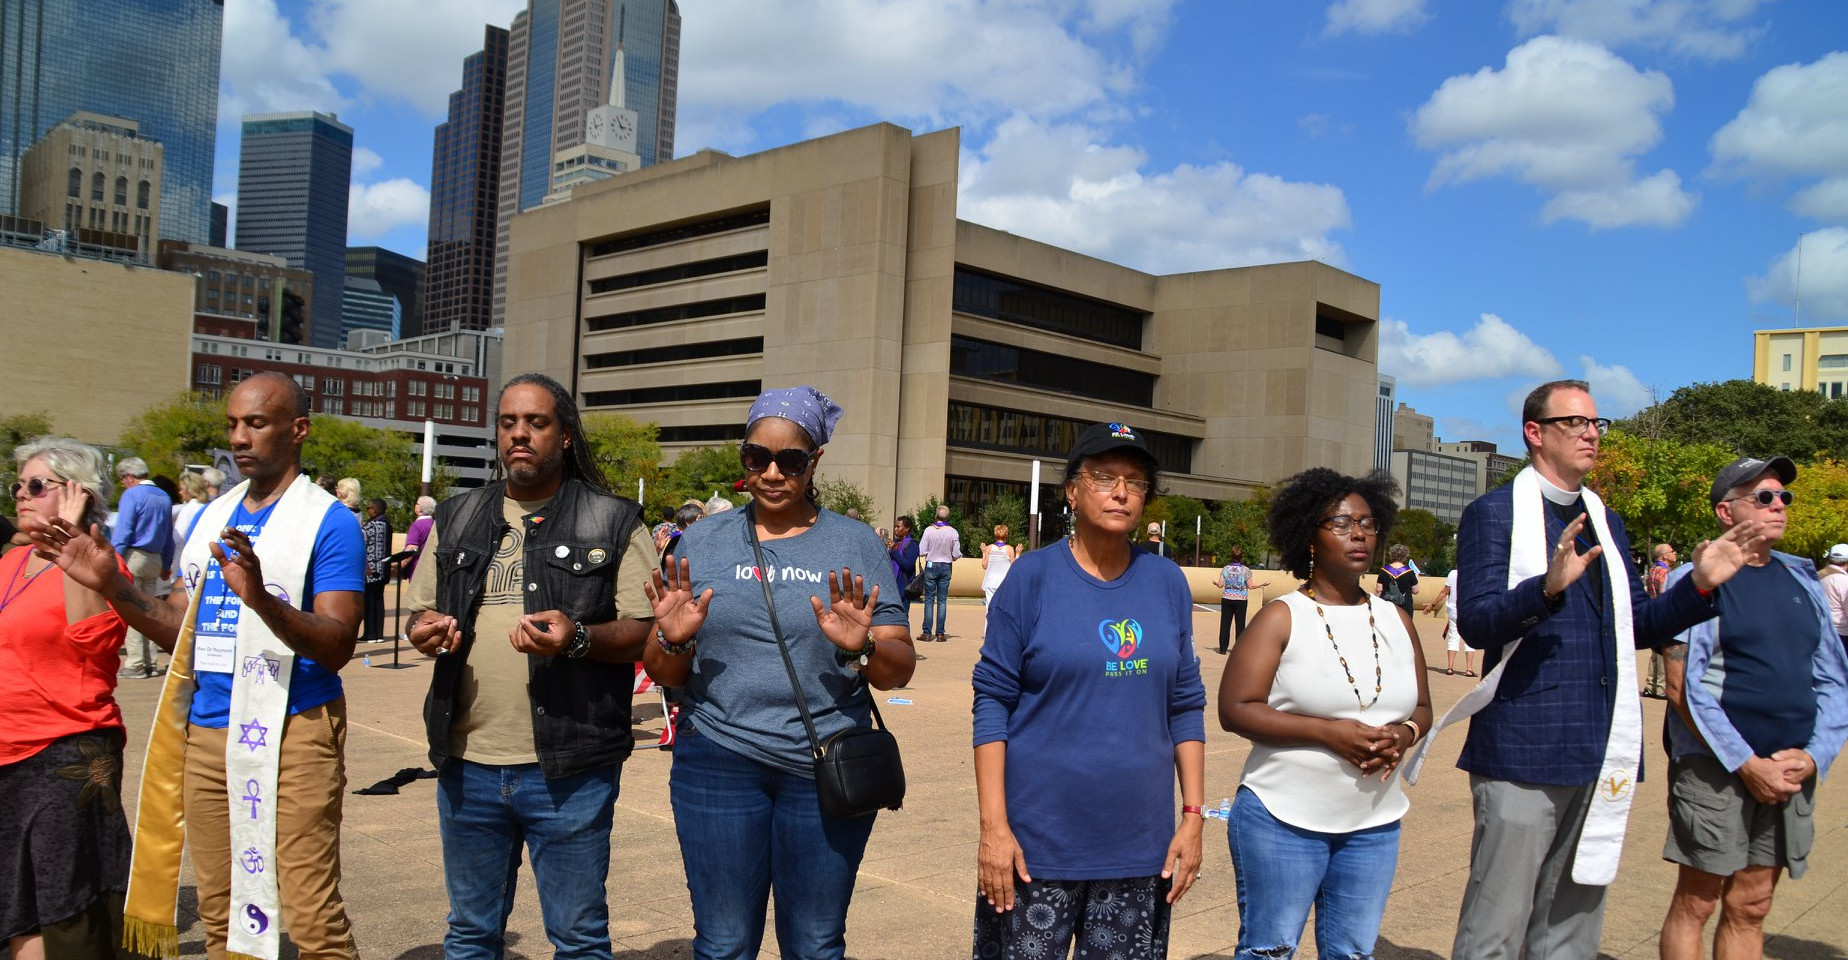 Rev. Ray and colleagues in Dallas TX